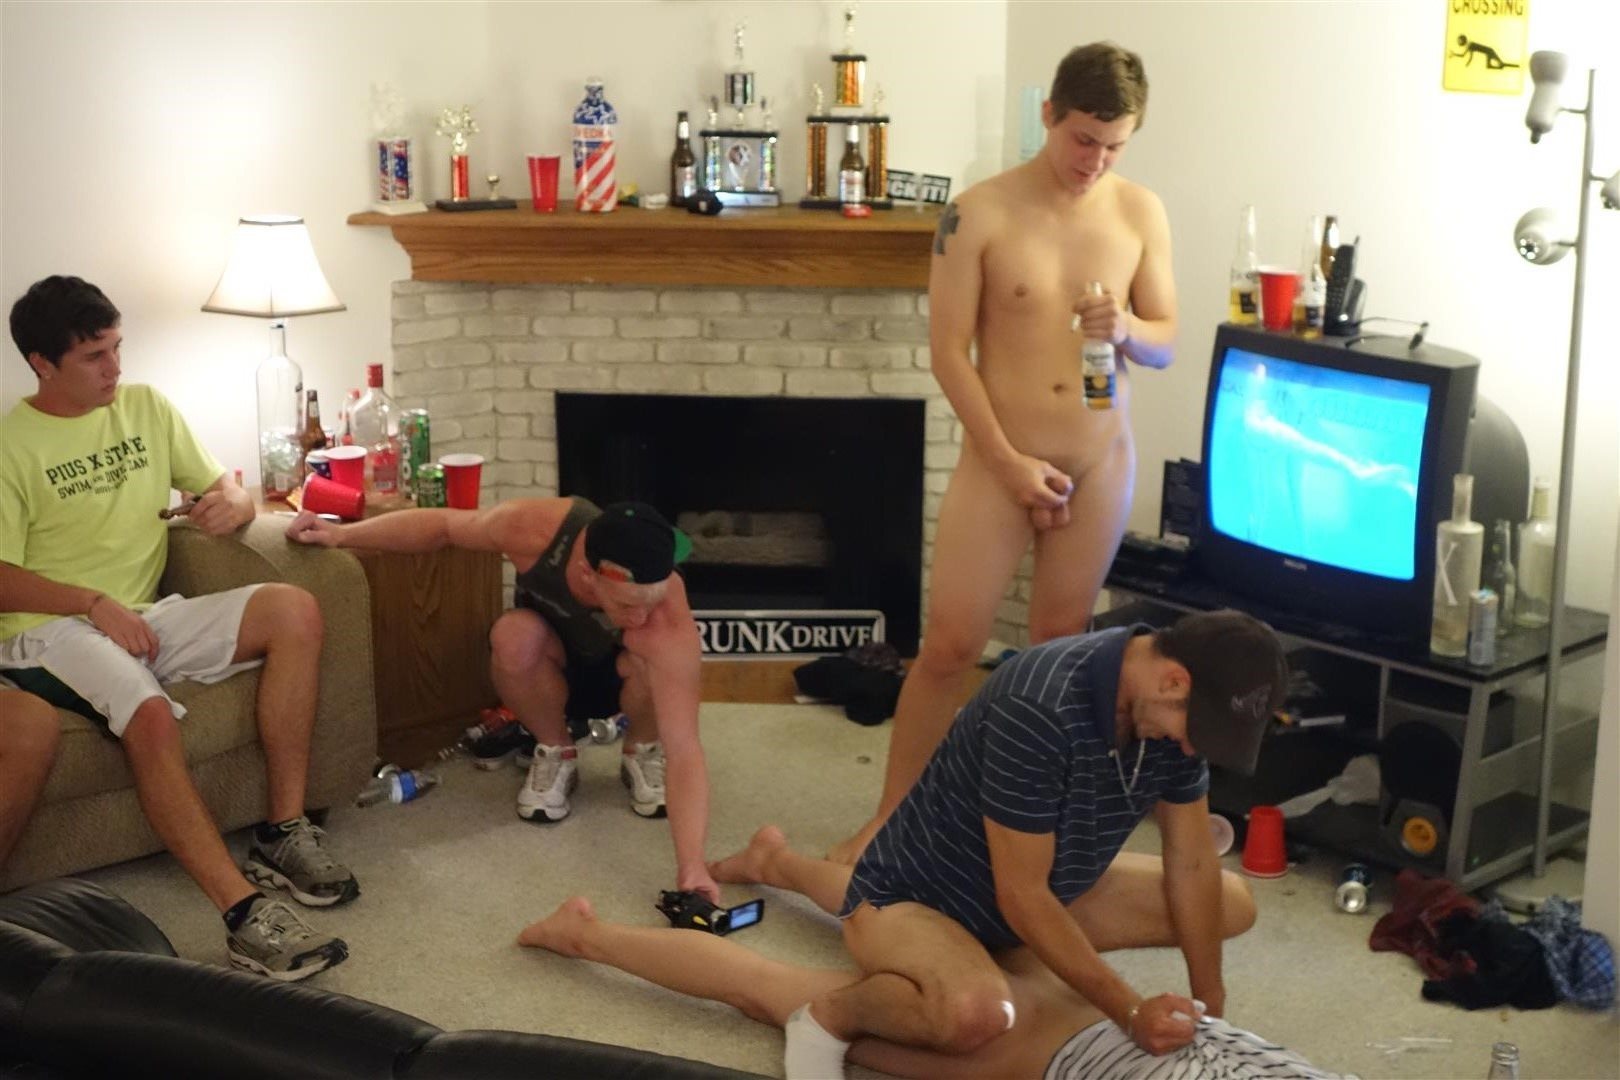 Fraternity-X-Drunk-Frat-Pledge-Gets-Barebacked-While-Passed-Out-Amateur-Gay-Porn-41 Drunk And Passed Out Frat Pledge Gets Fucked Bareback